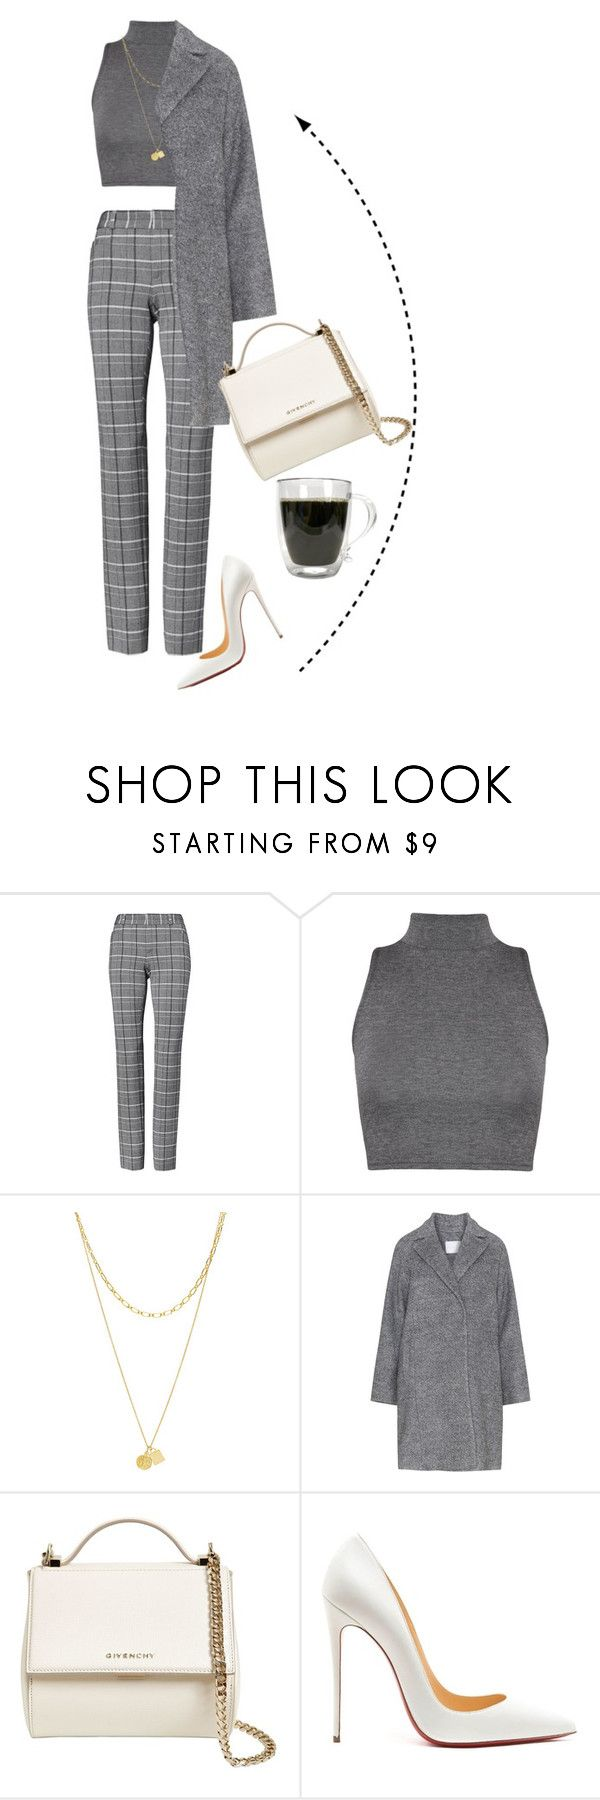 """..."" by pnrcalis ❤ liked on Polyvore featuring WearAll, Zimmermann, Givenchy and Christian Louboutin"